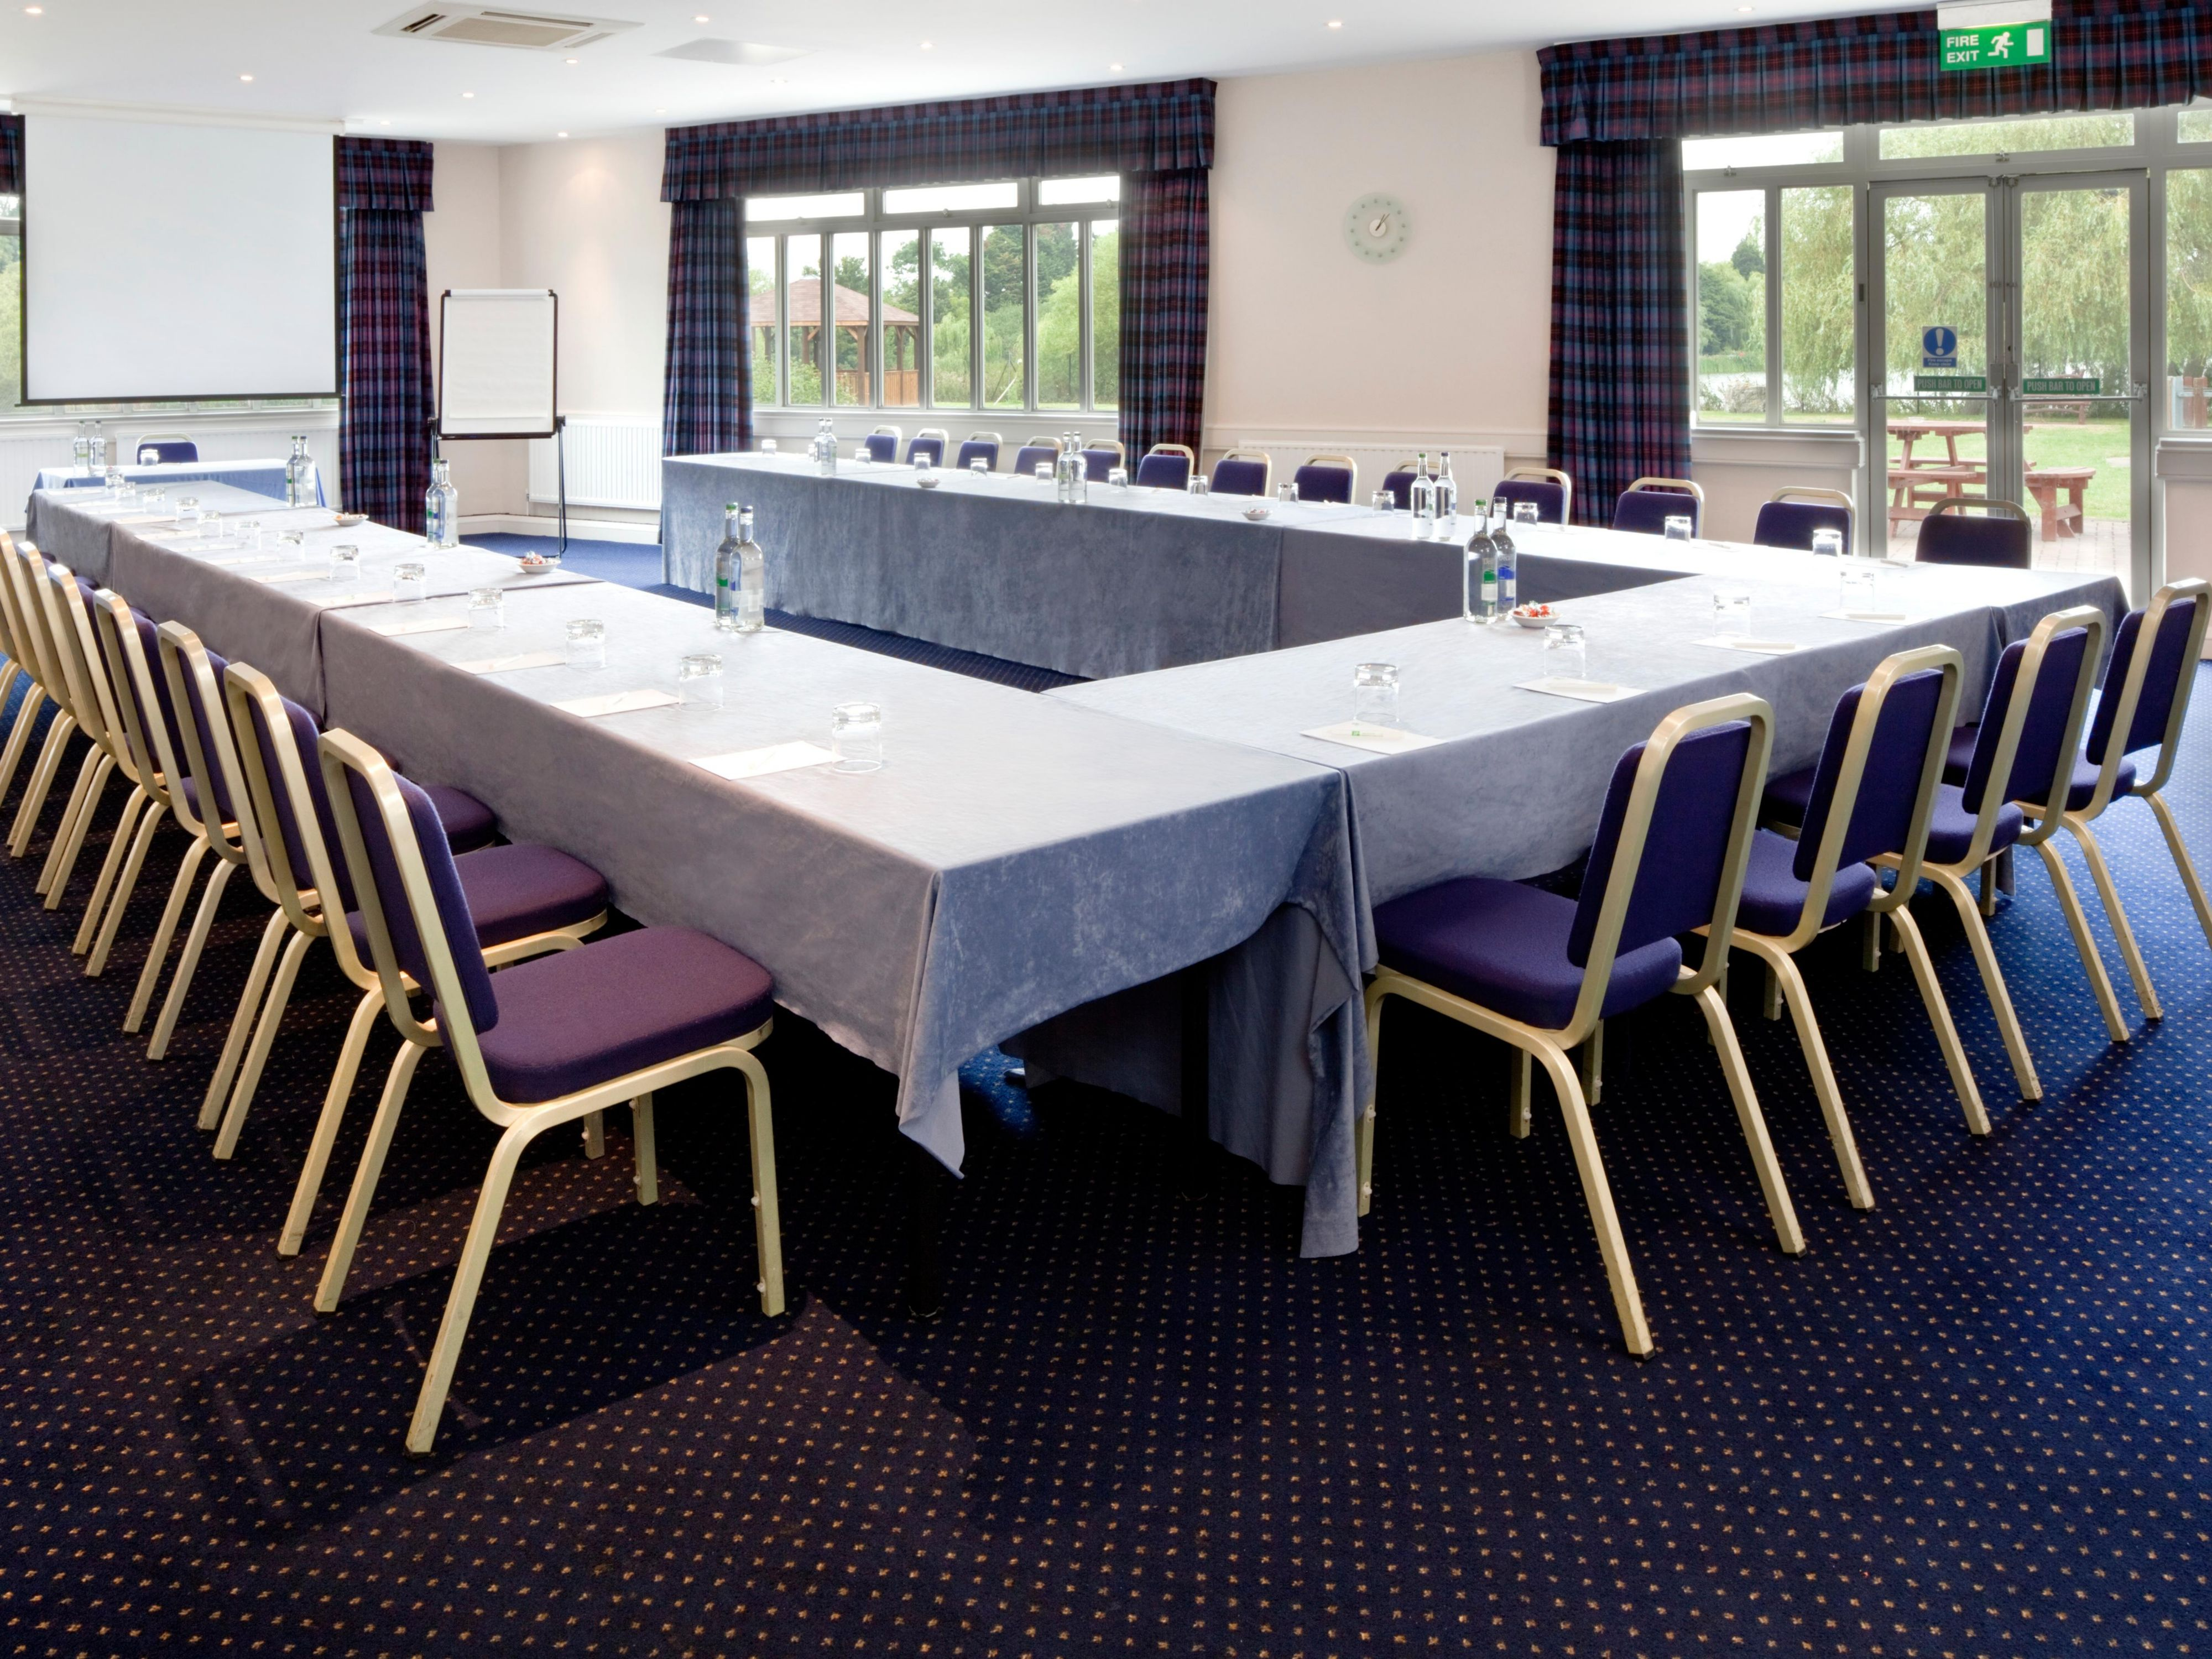 Our large boardrooms boast natural daylight and plently of space